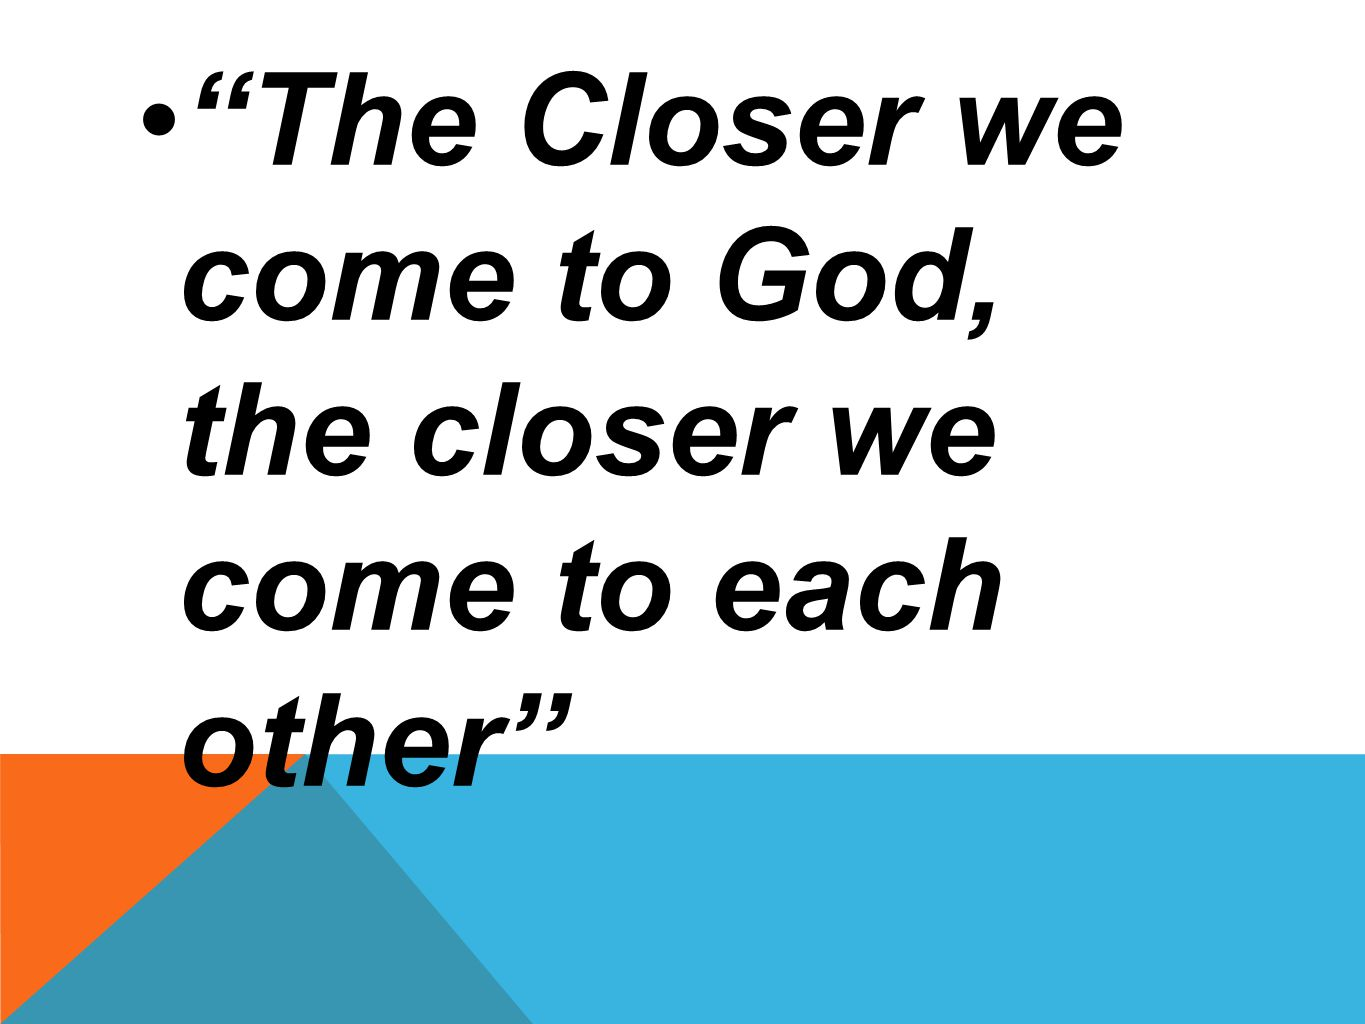 The Closer we come to God, the closer we come to each other